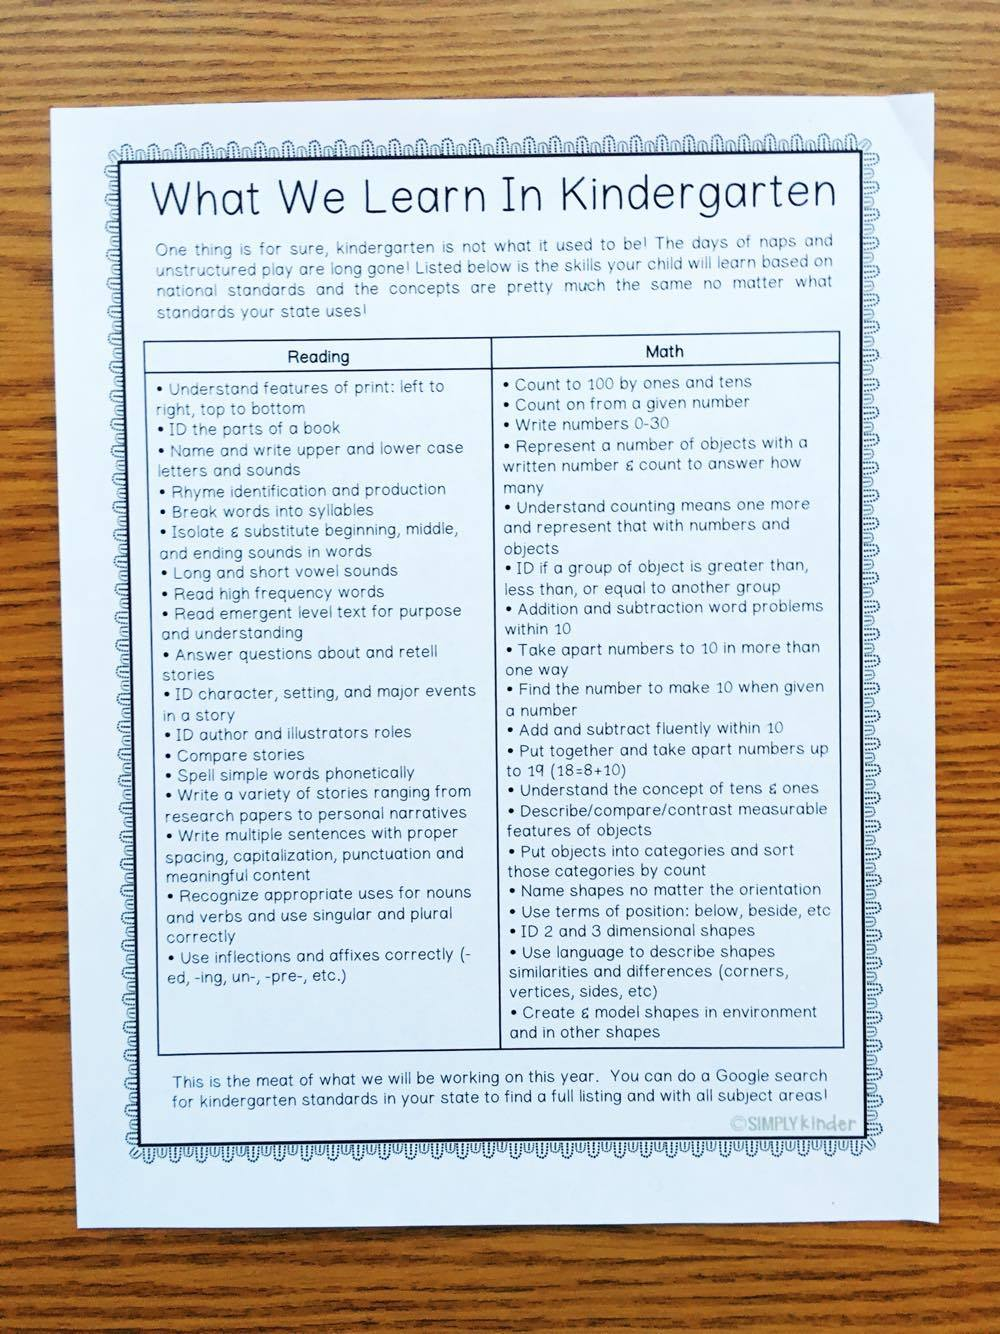 Free Back to School Parent Packet for kindergartener from Simply Kinder